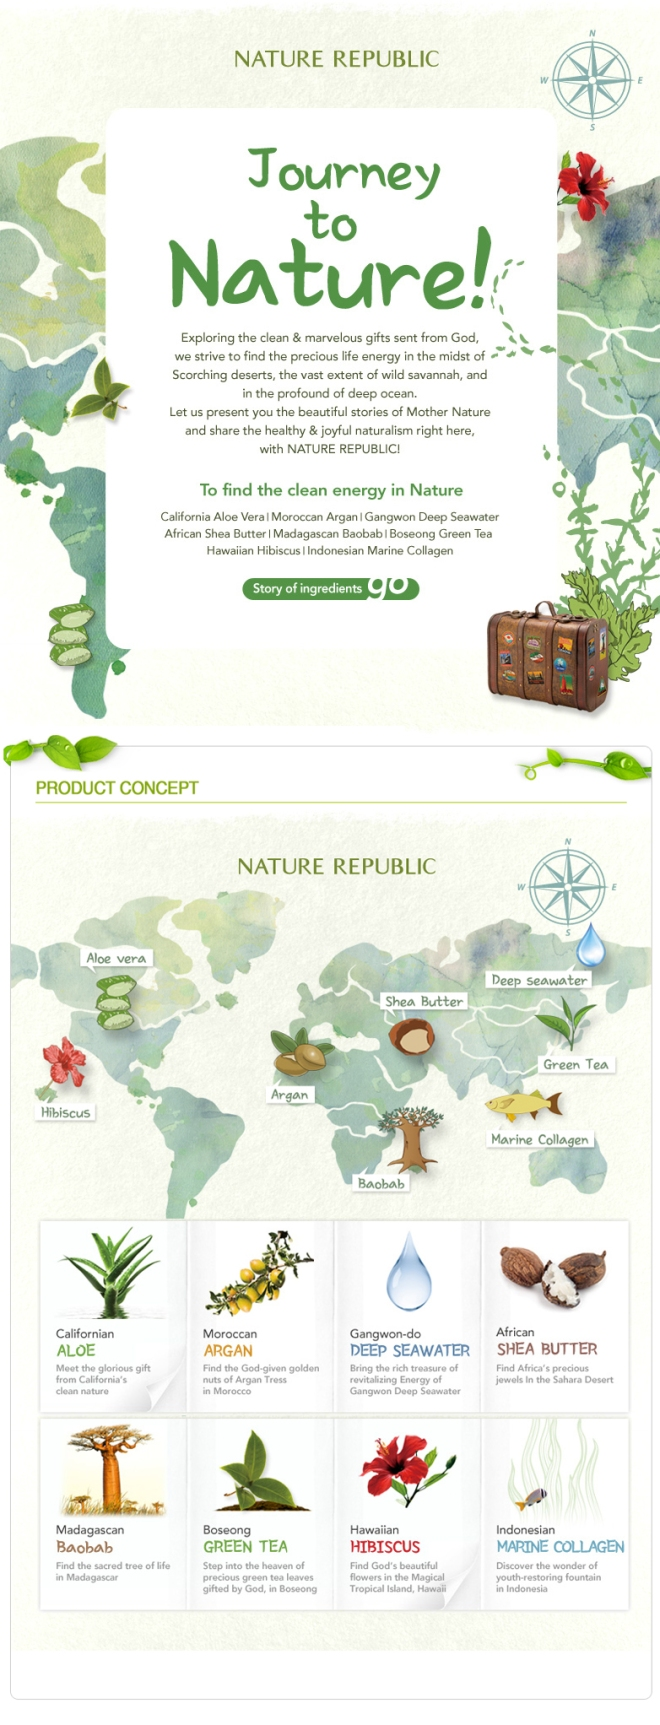 Credit: Nature Republic English section